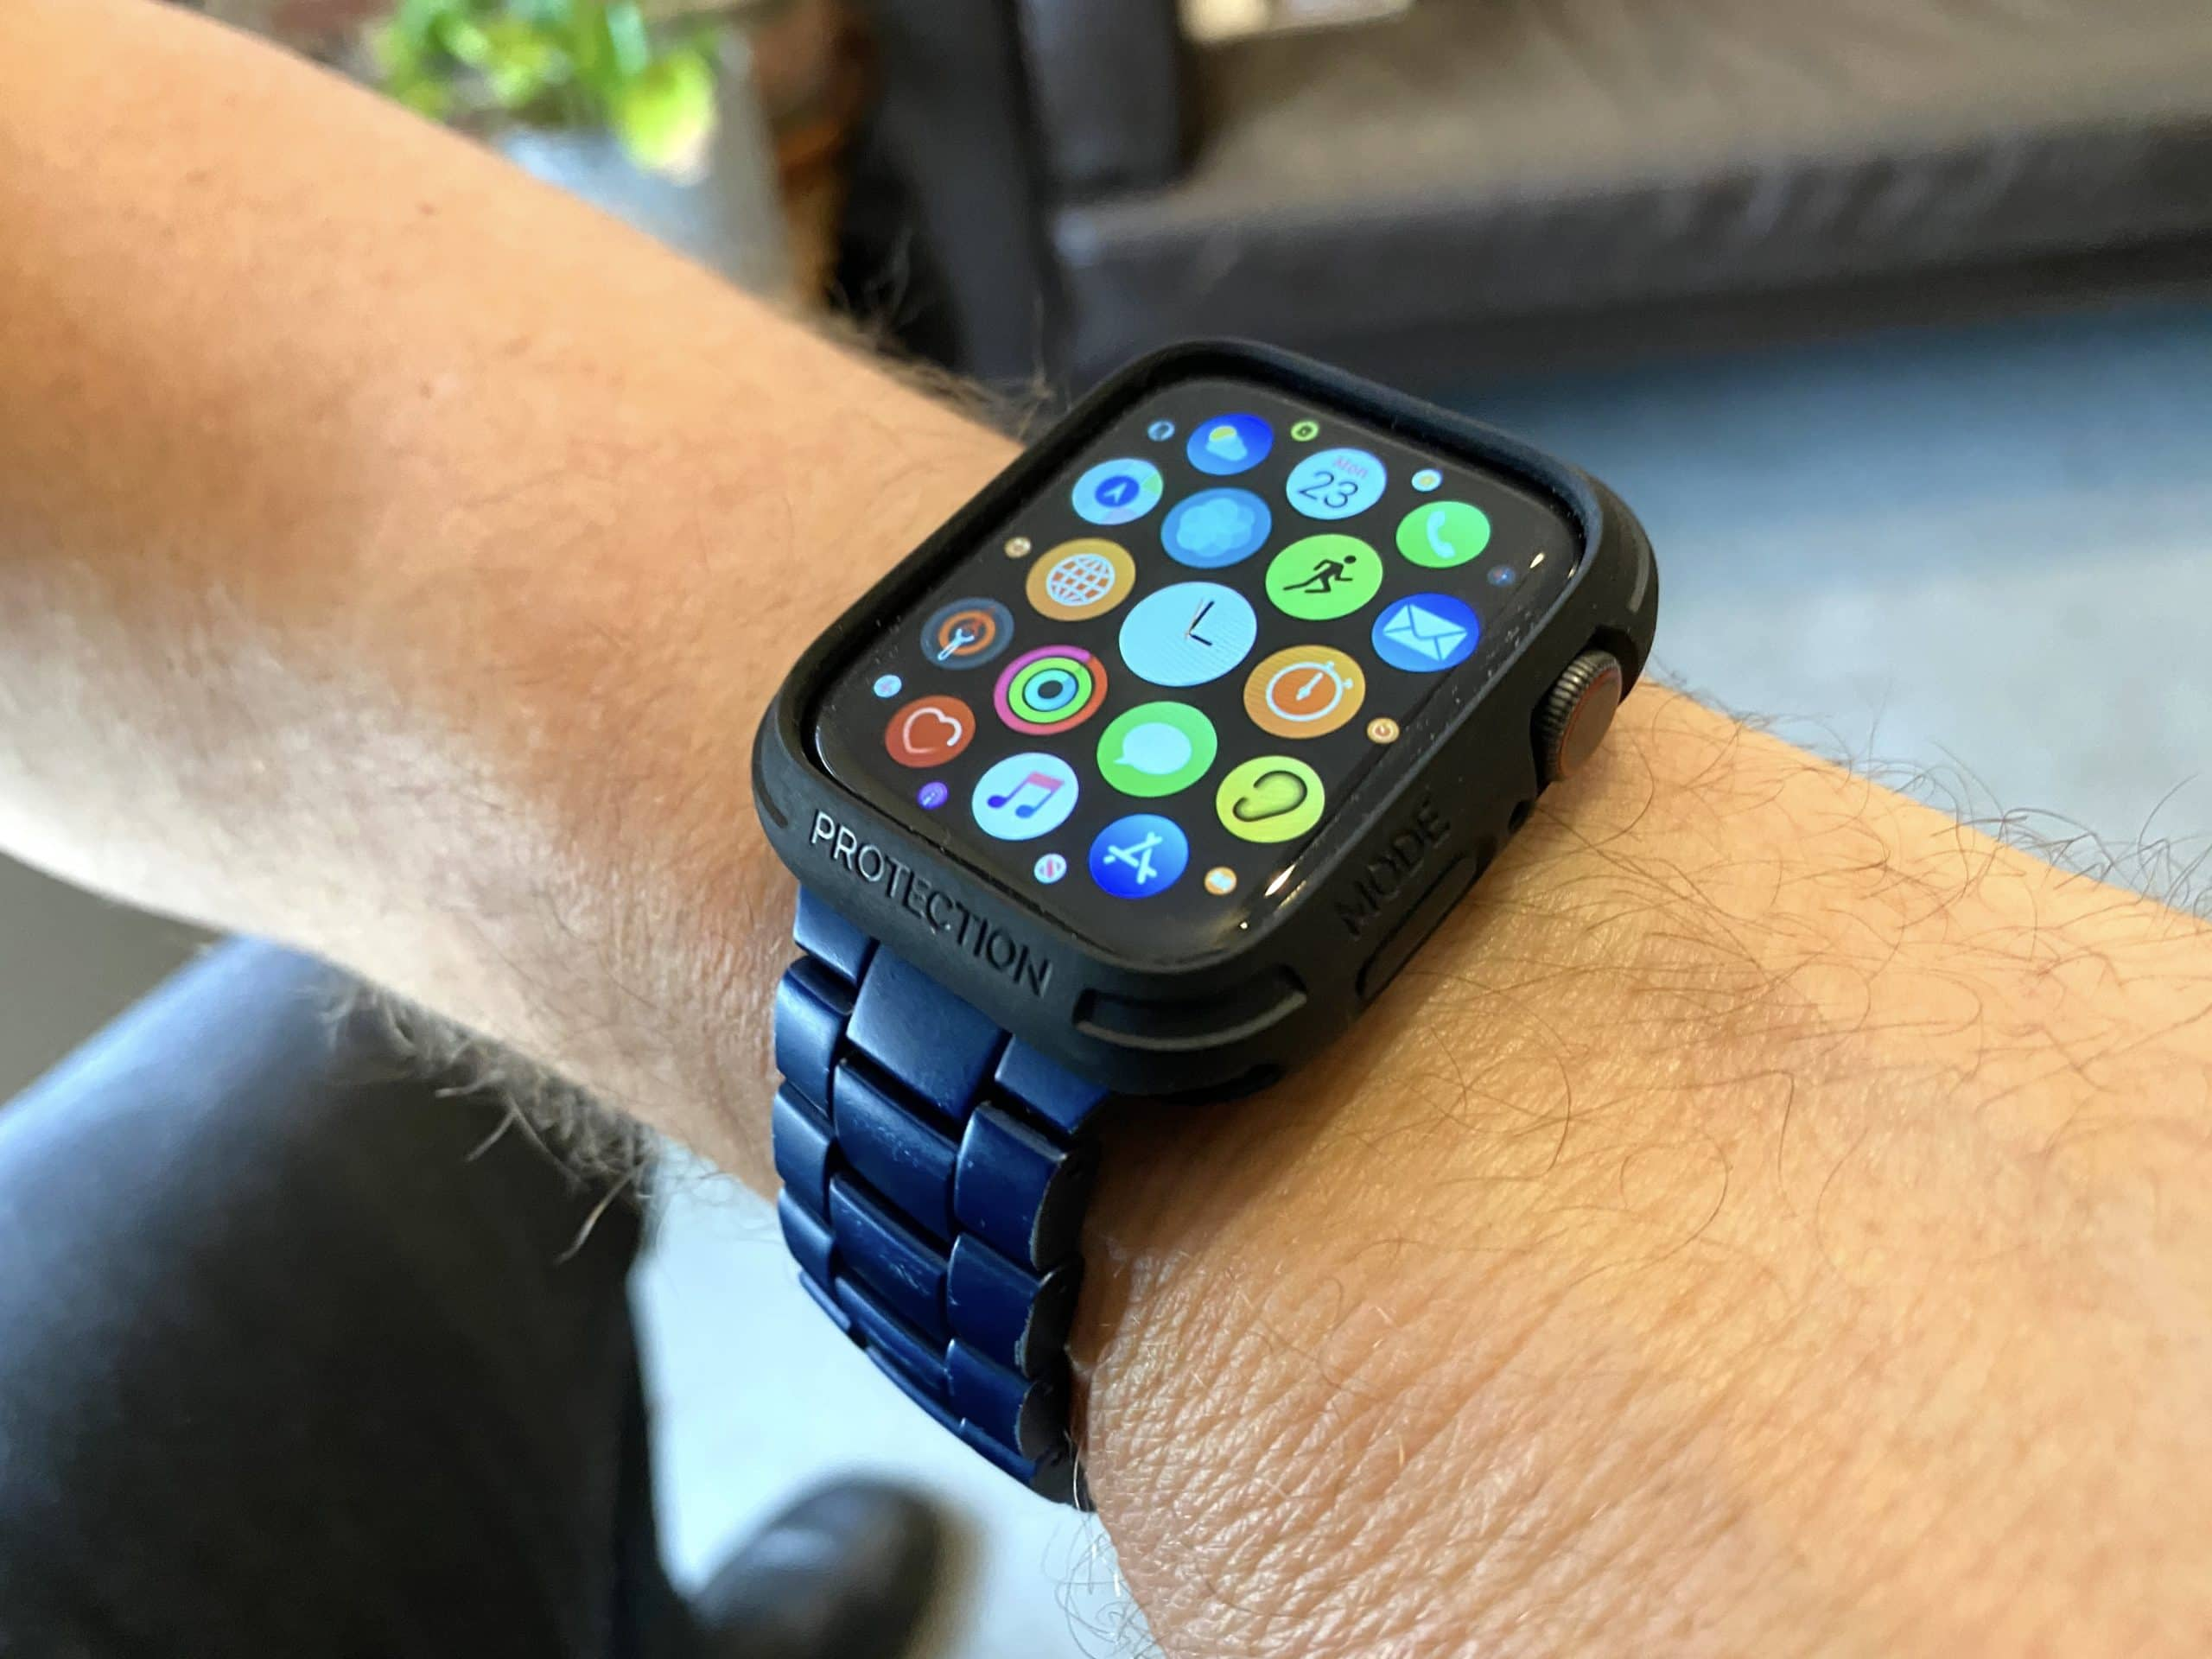 Apple Watch research study will monitor for possible cognitive decline